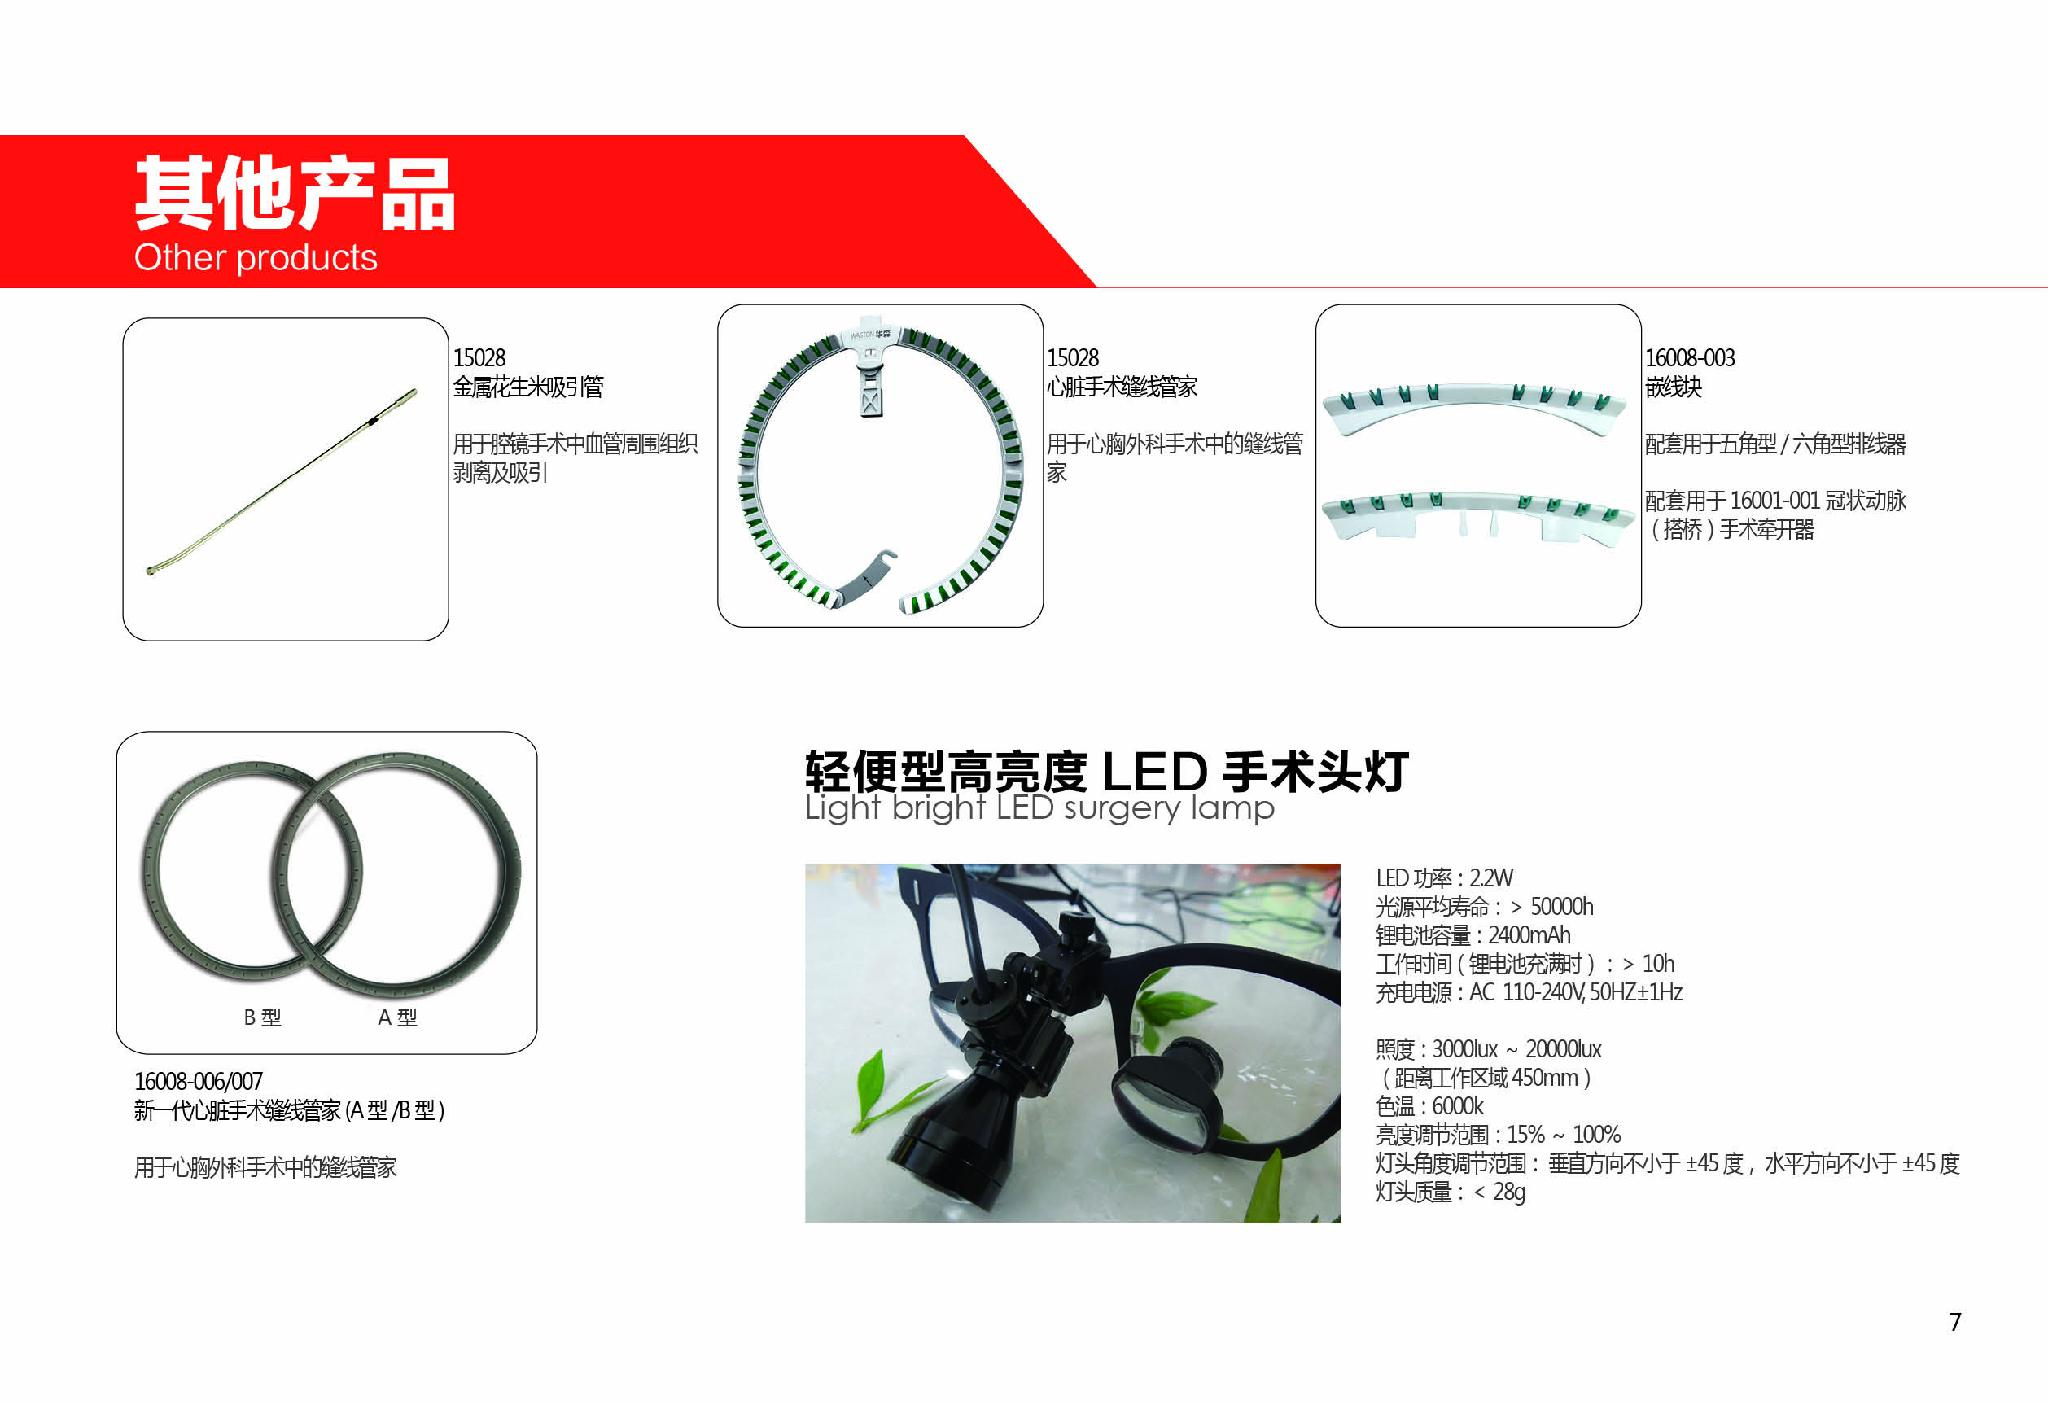 Miracle Series Sternal Closure System 3